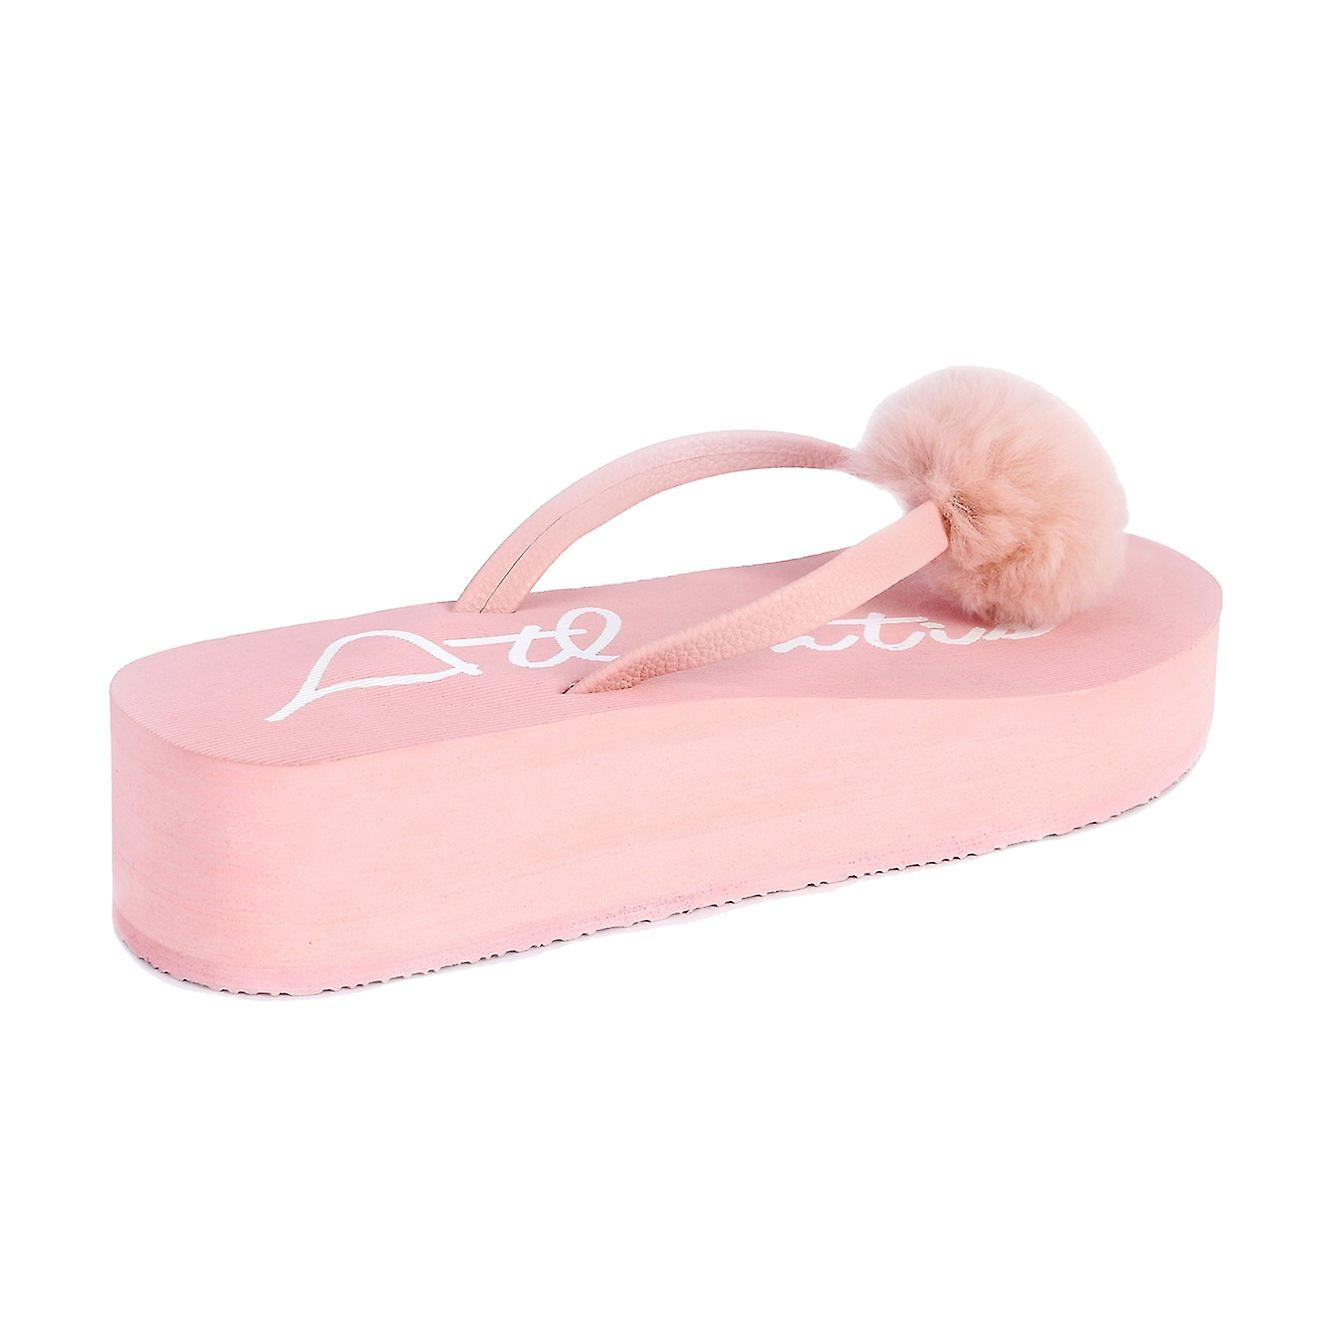 Fluffy pink wedge flip flops